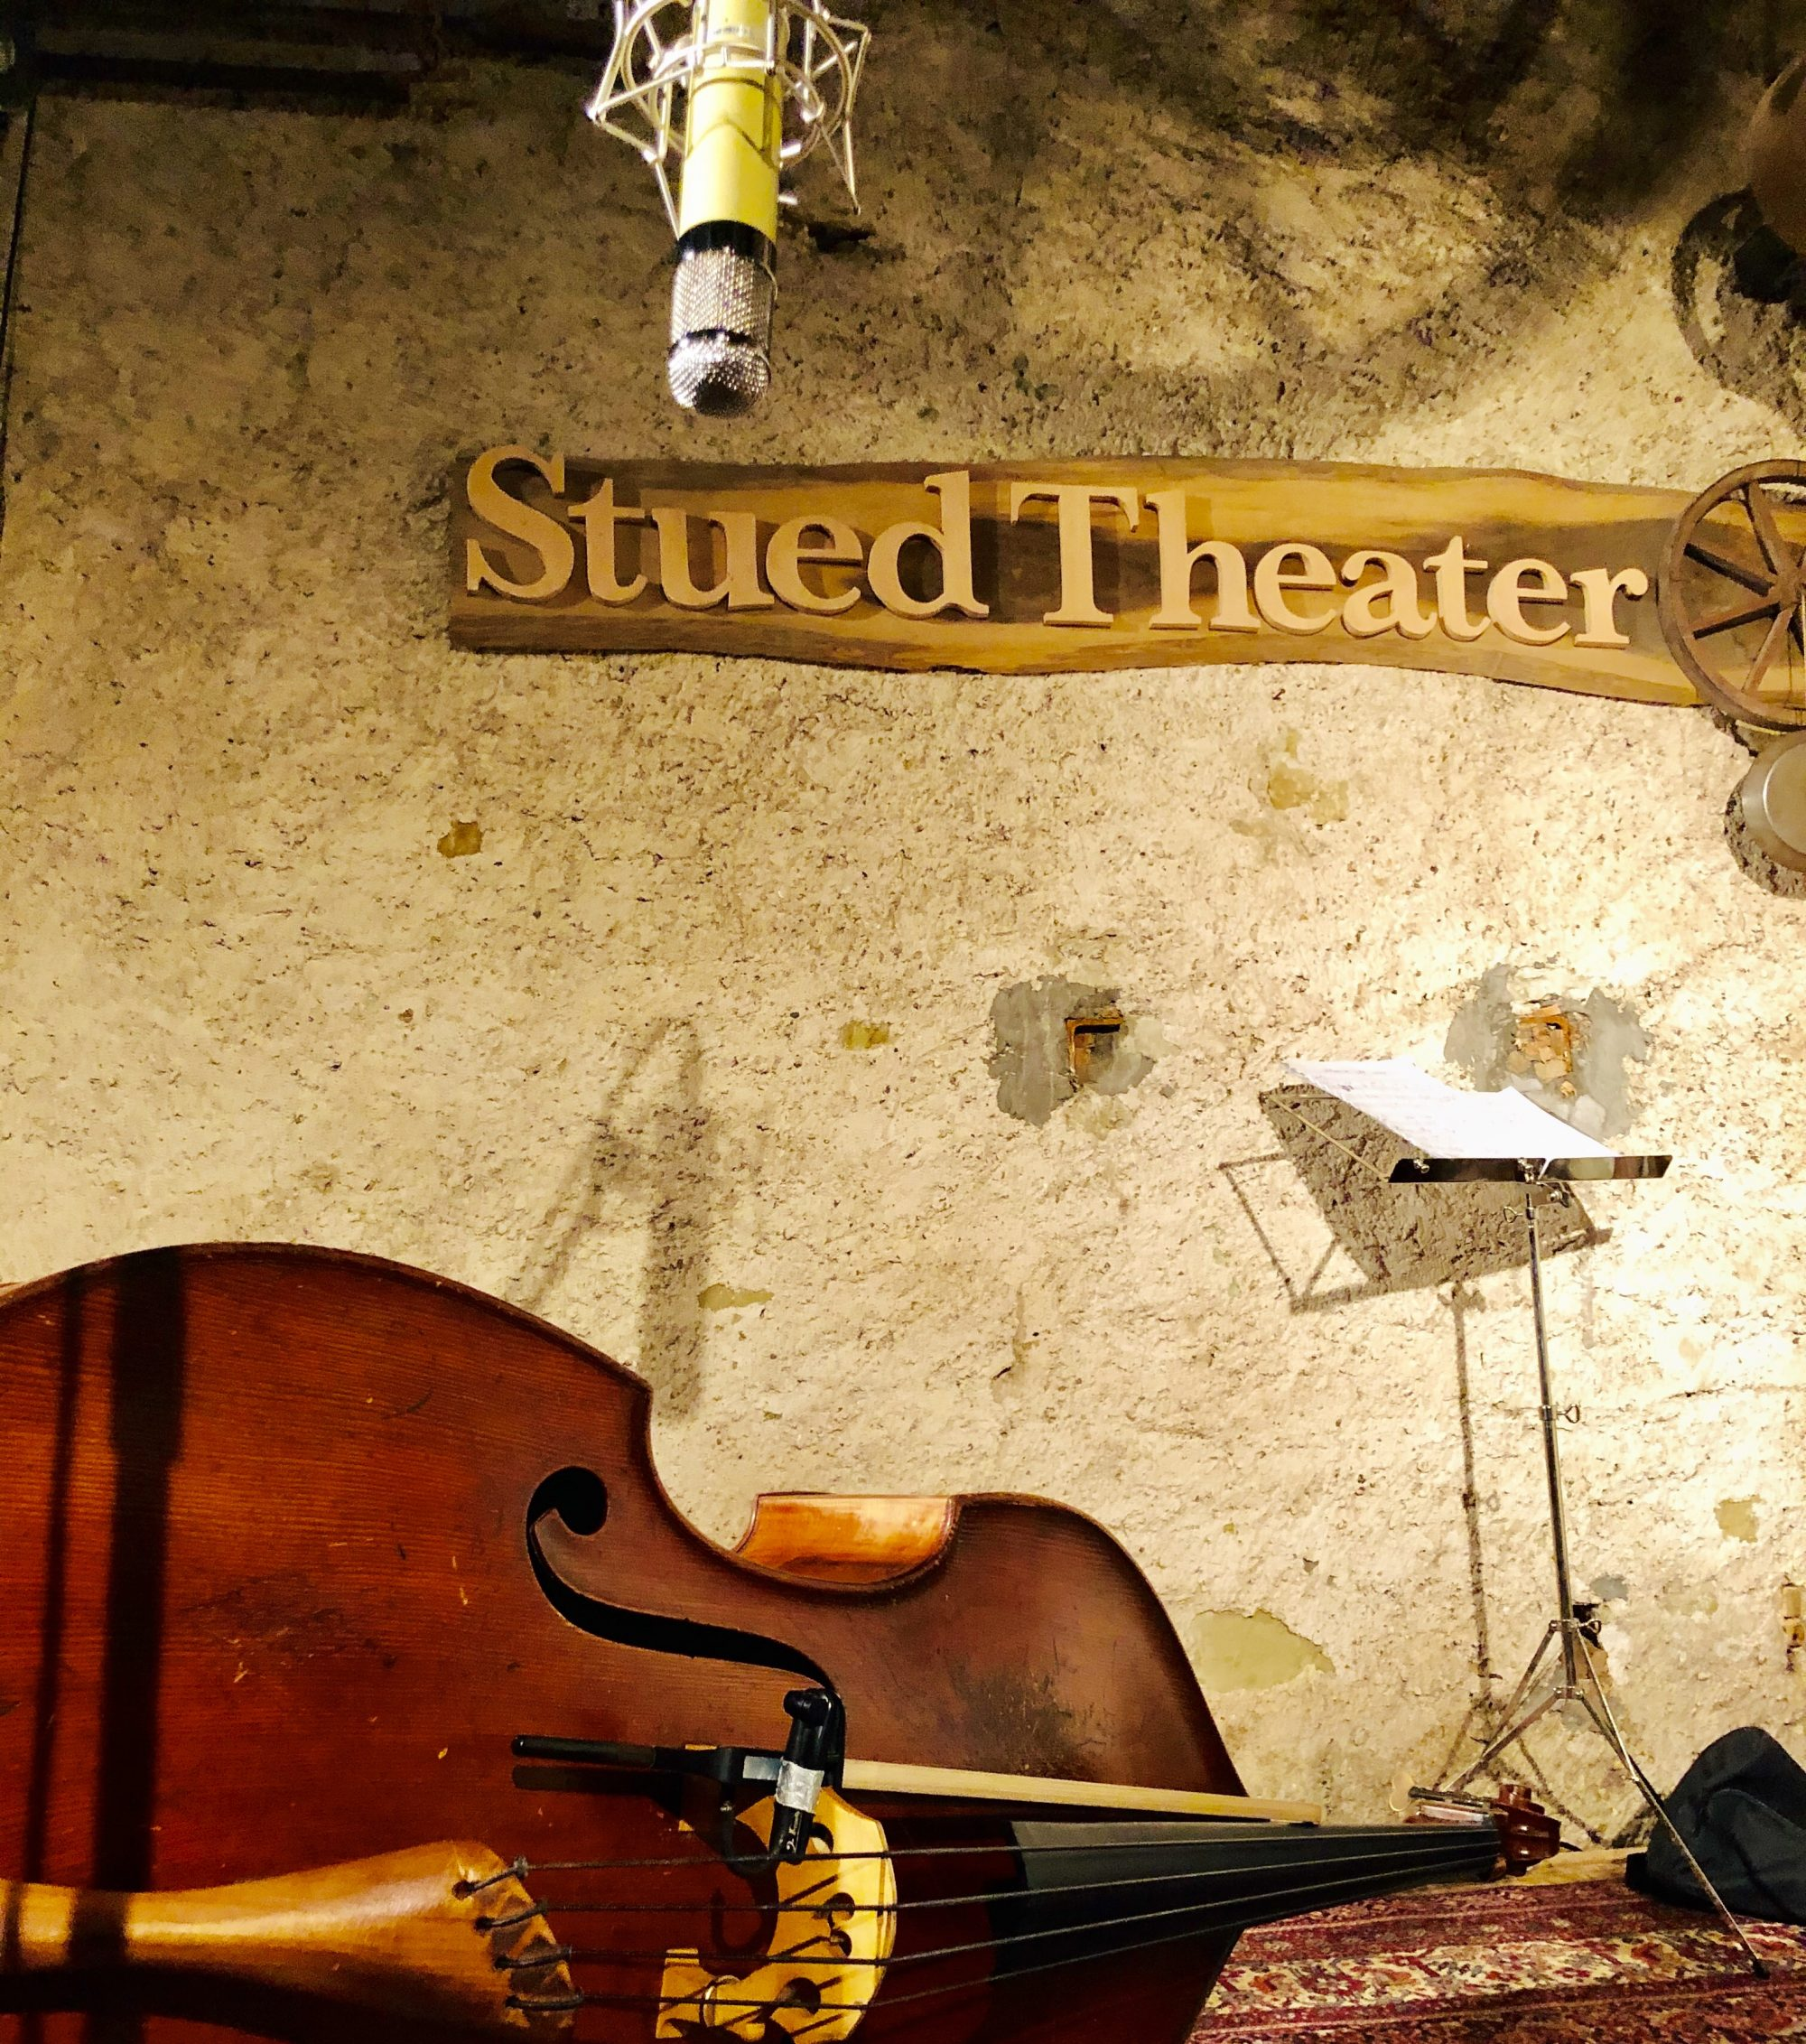 Stued Theater